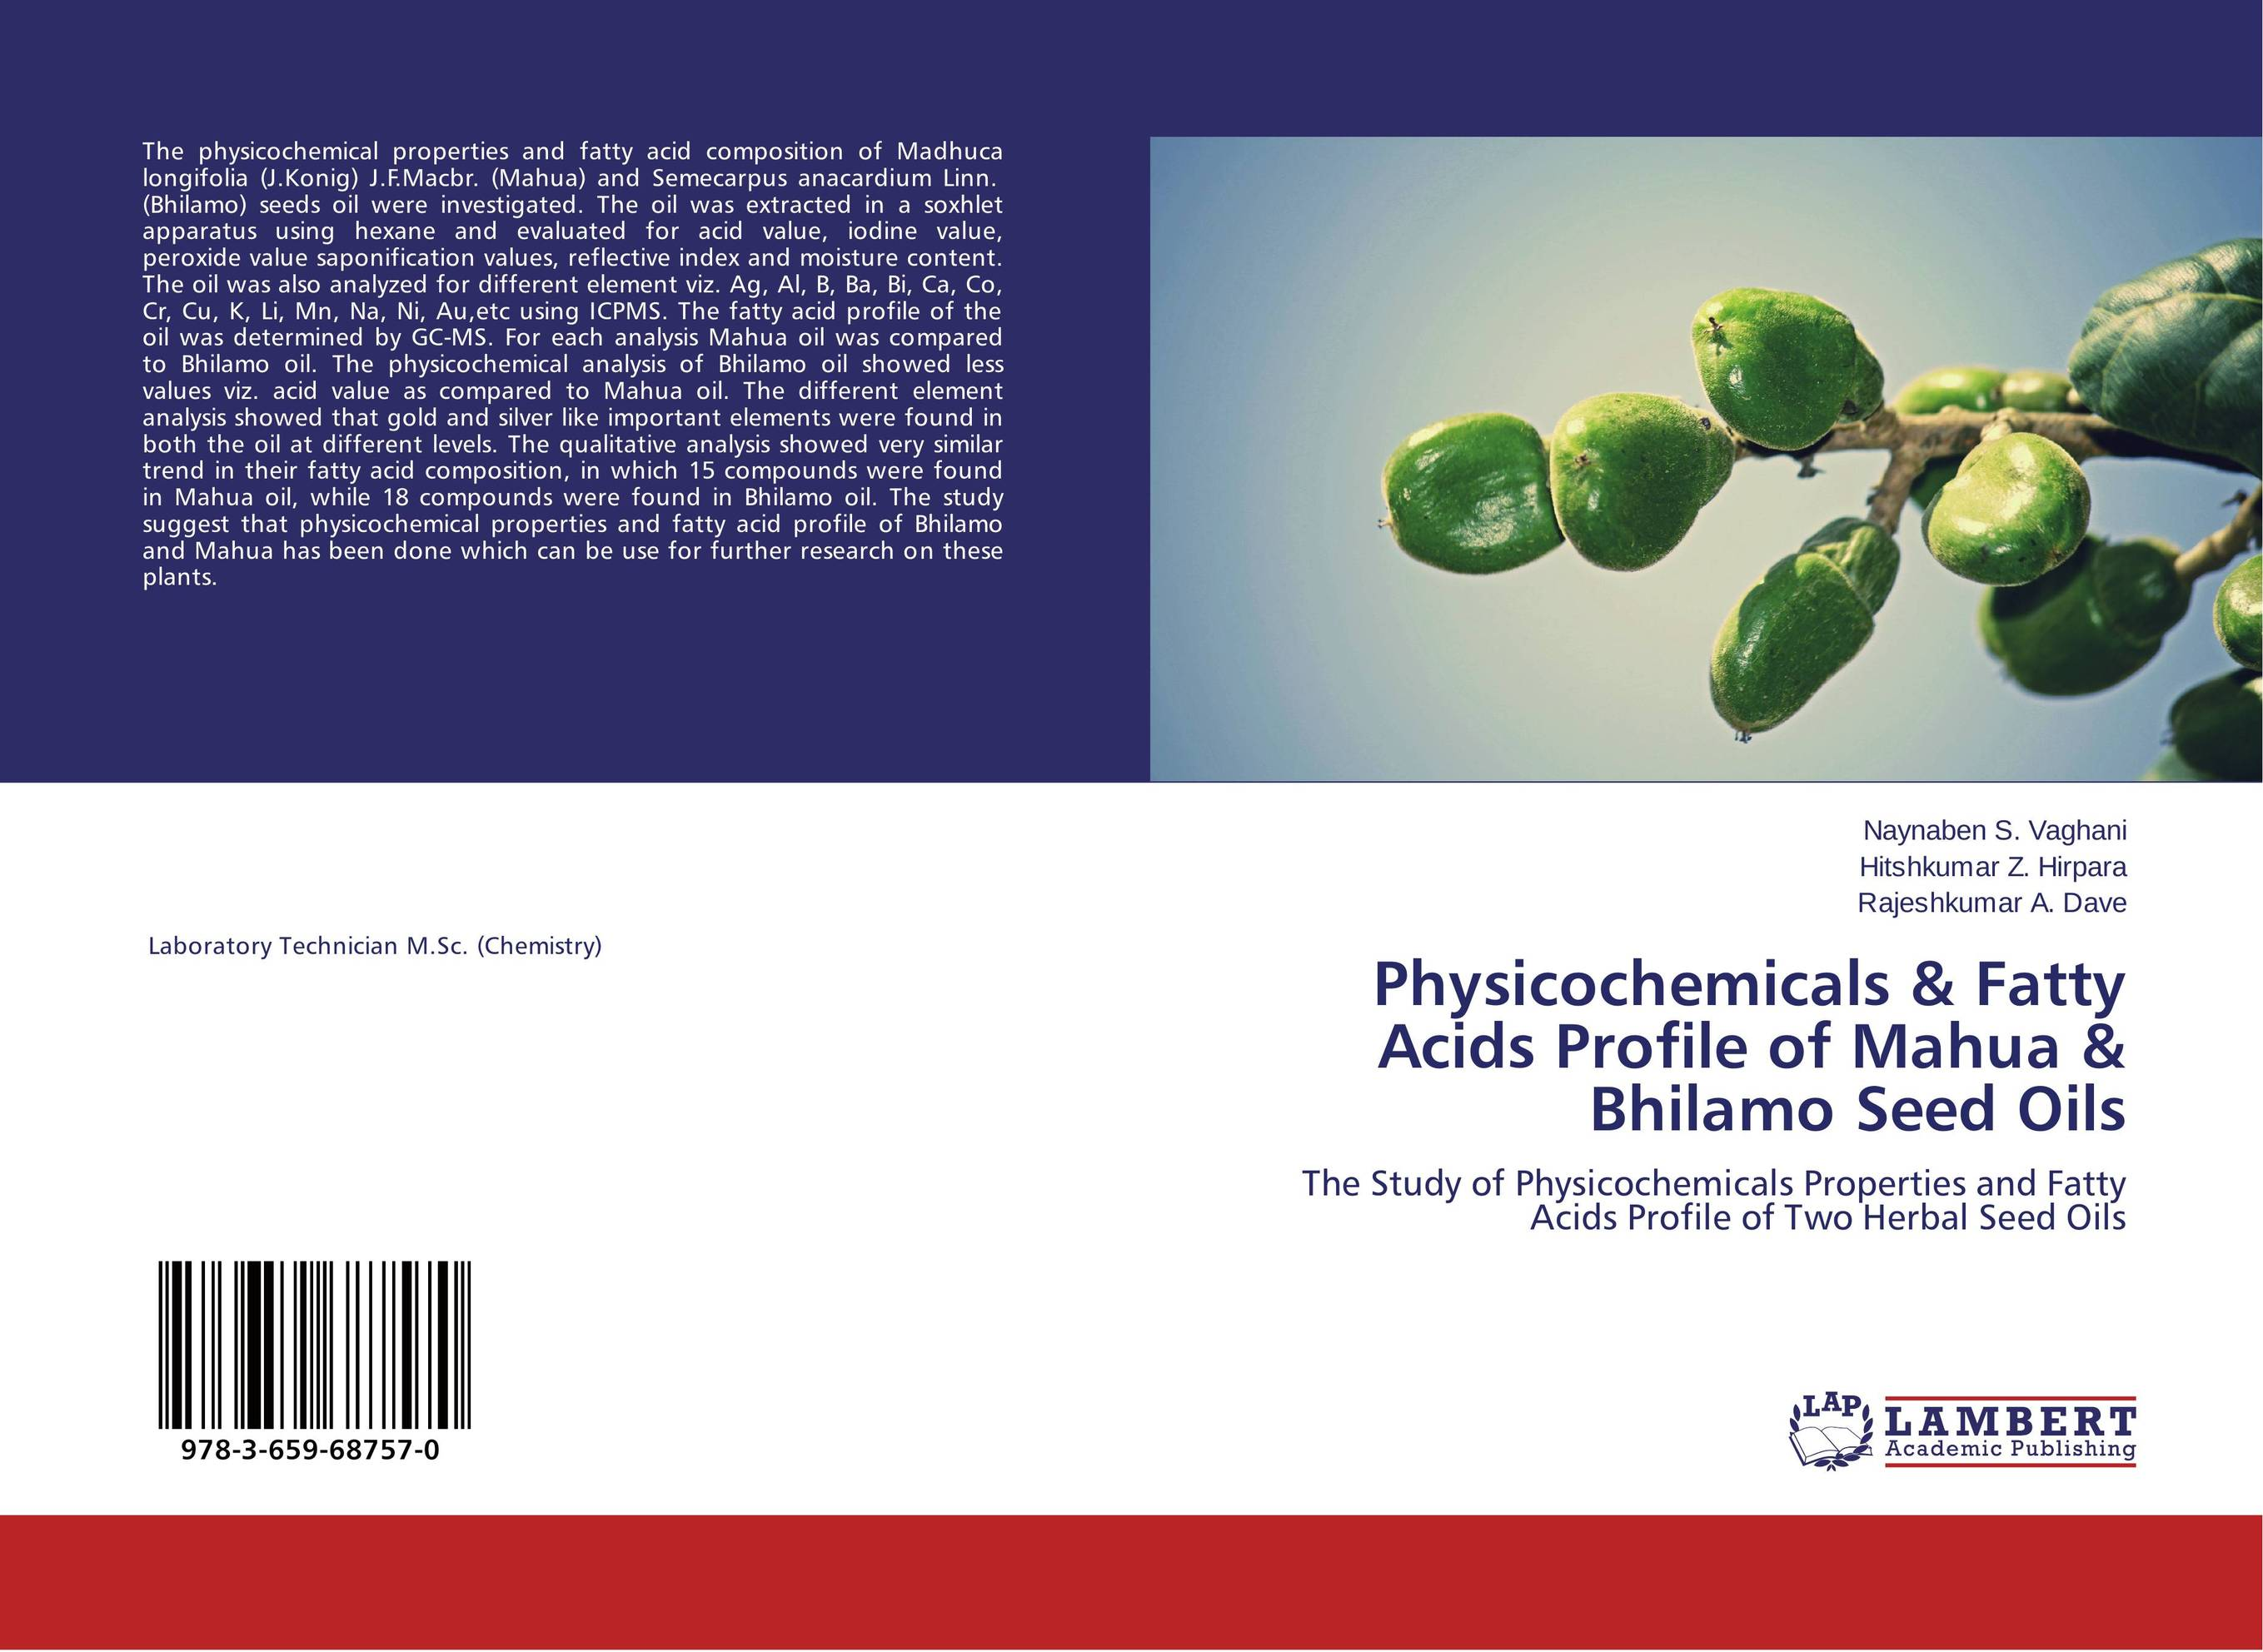 Physicochemicals & Fatty Acids Profile of Mahua & Bhilamo Seed Oils iyobosa ogbeide optimisation of maldi tof ms for the detection of omega 3 fatty acids